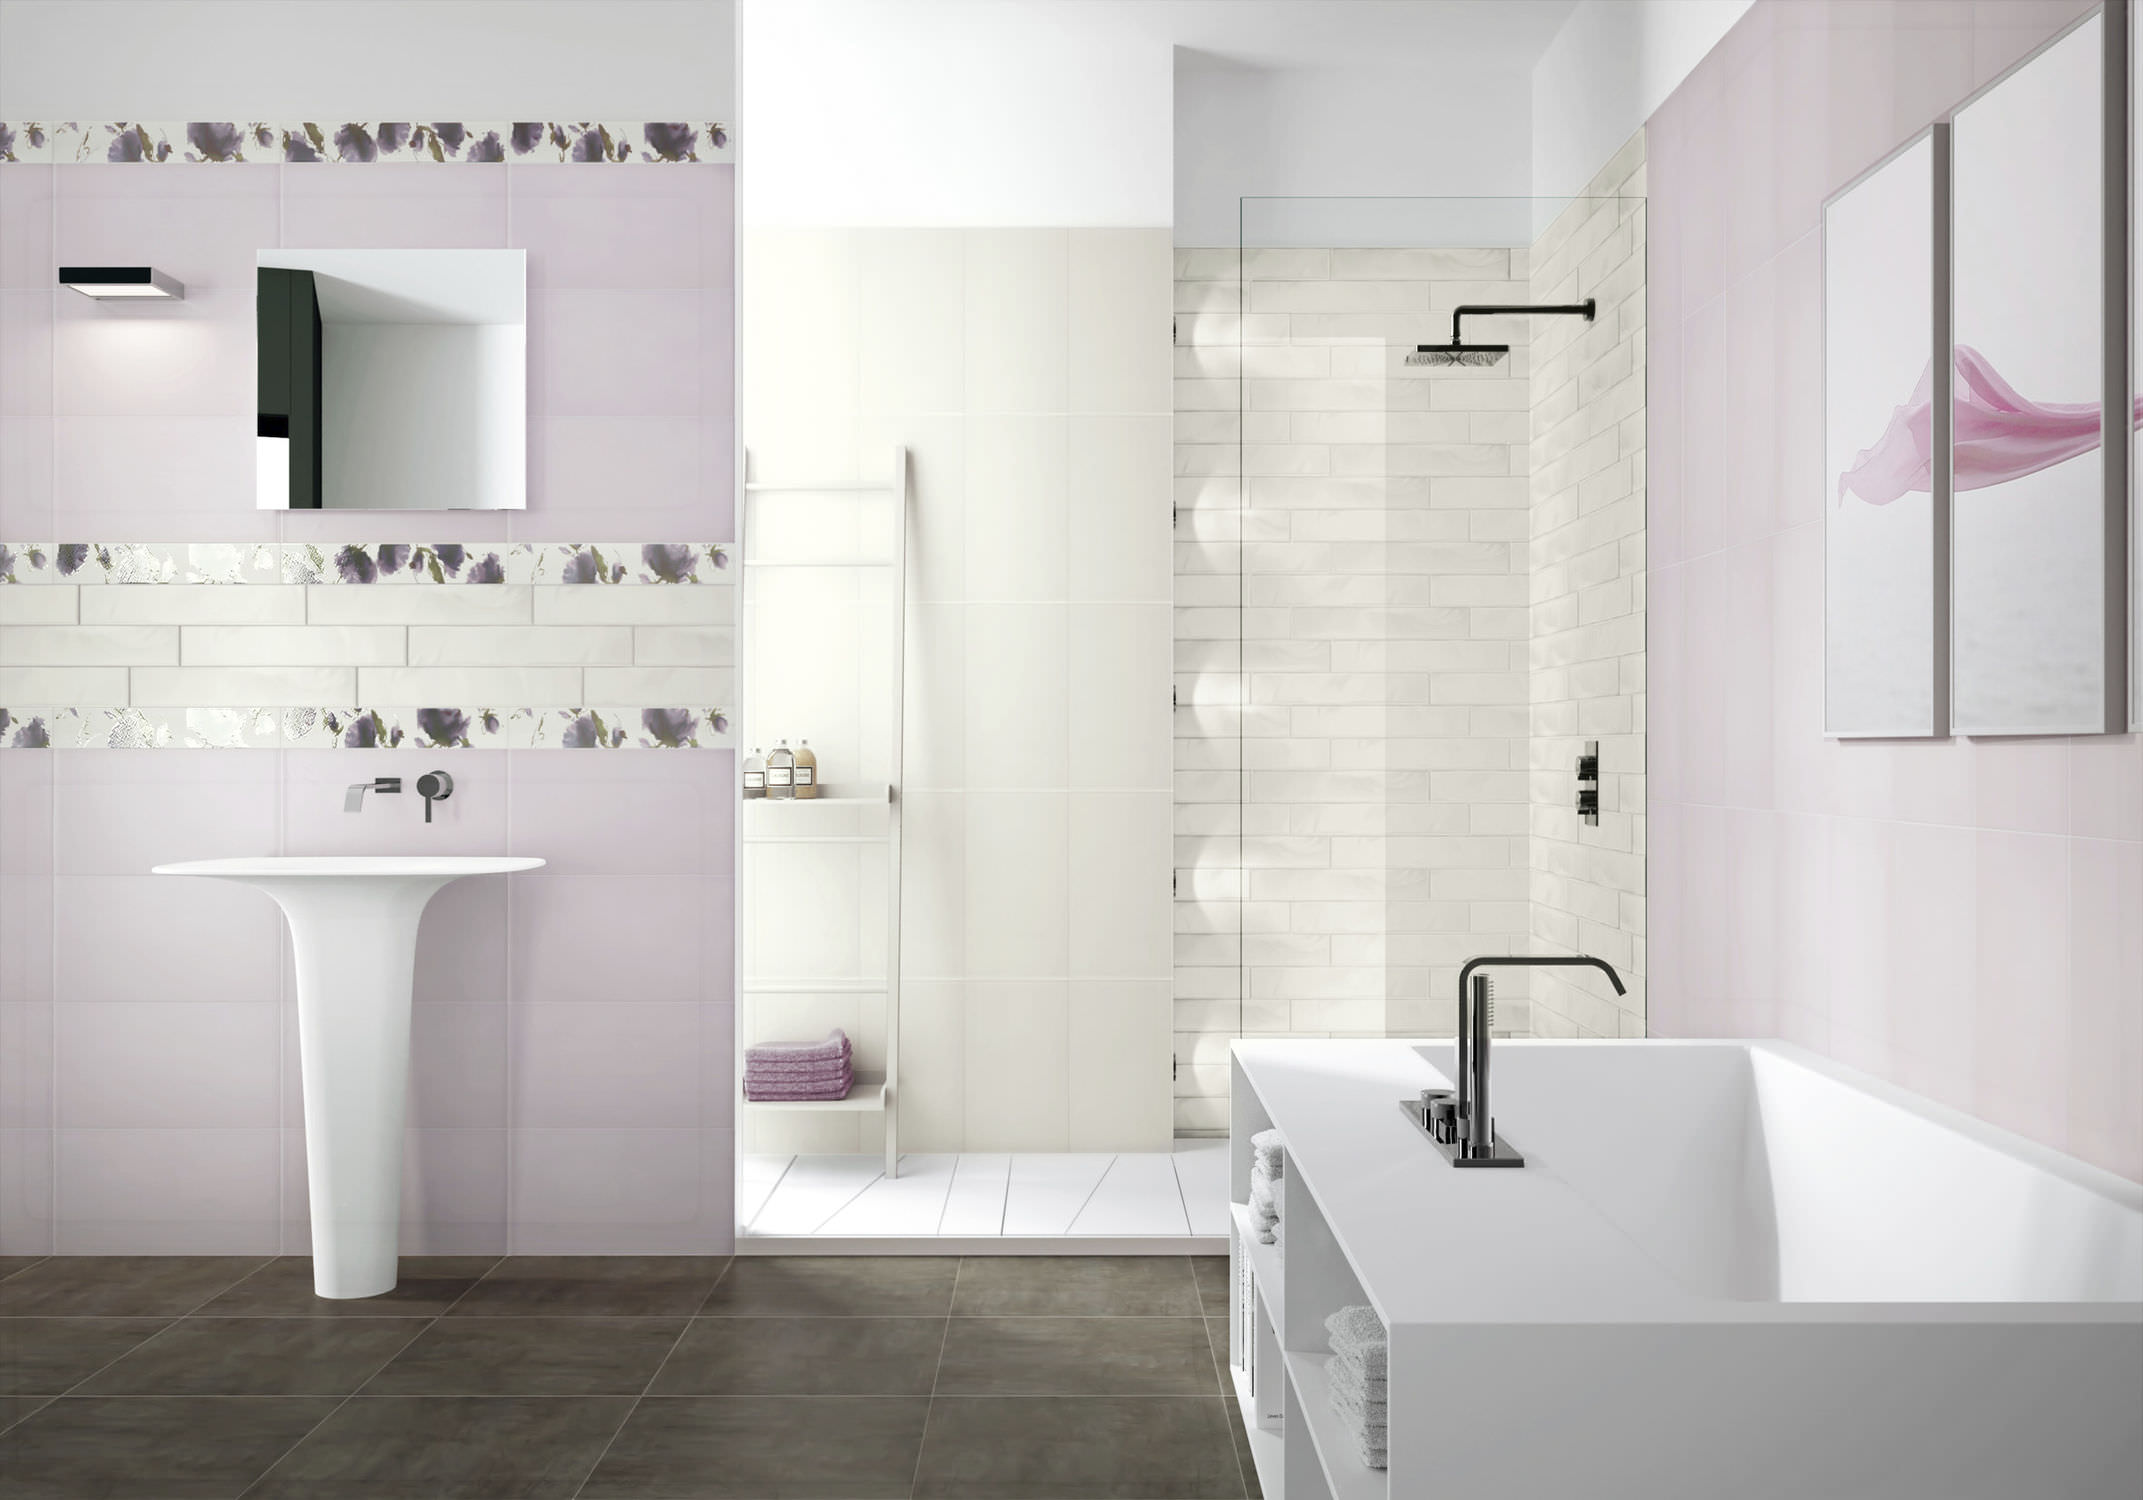 27 Wonderful Pictures And Ideas Of Italian Bathroom Wall Tiles 2021